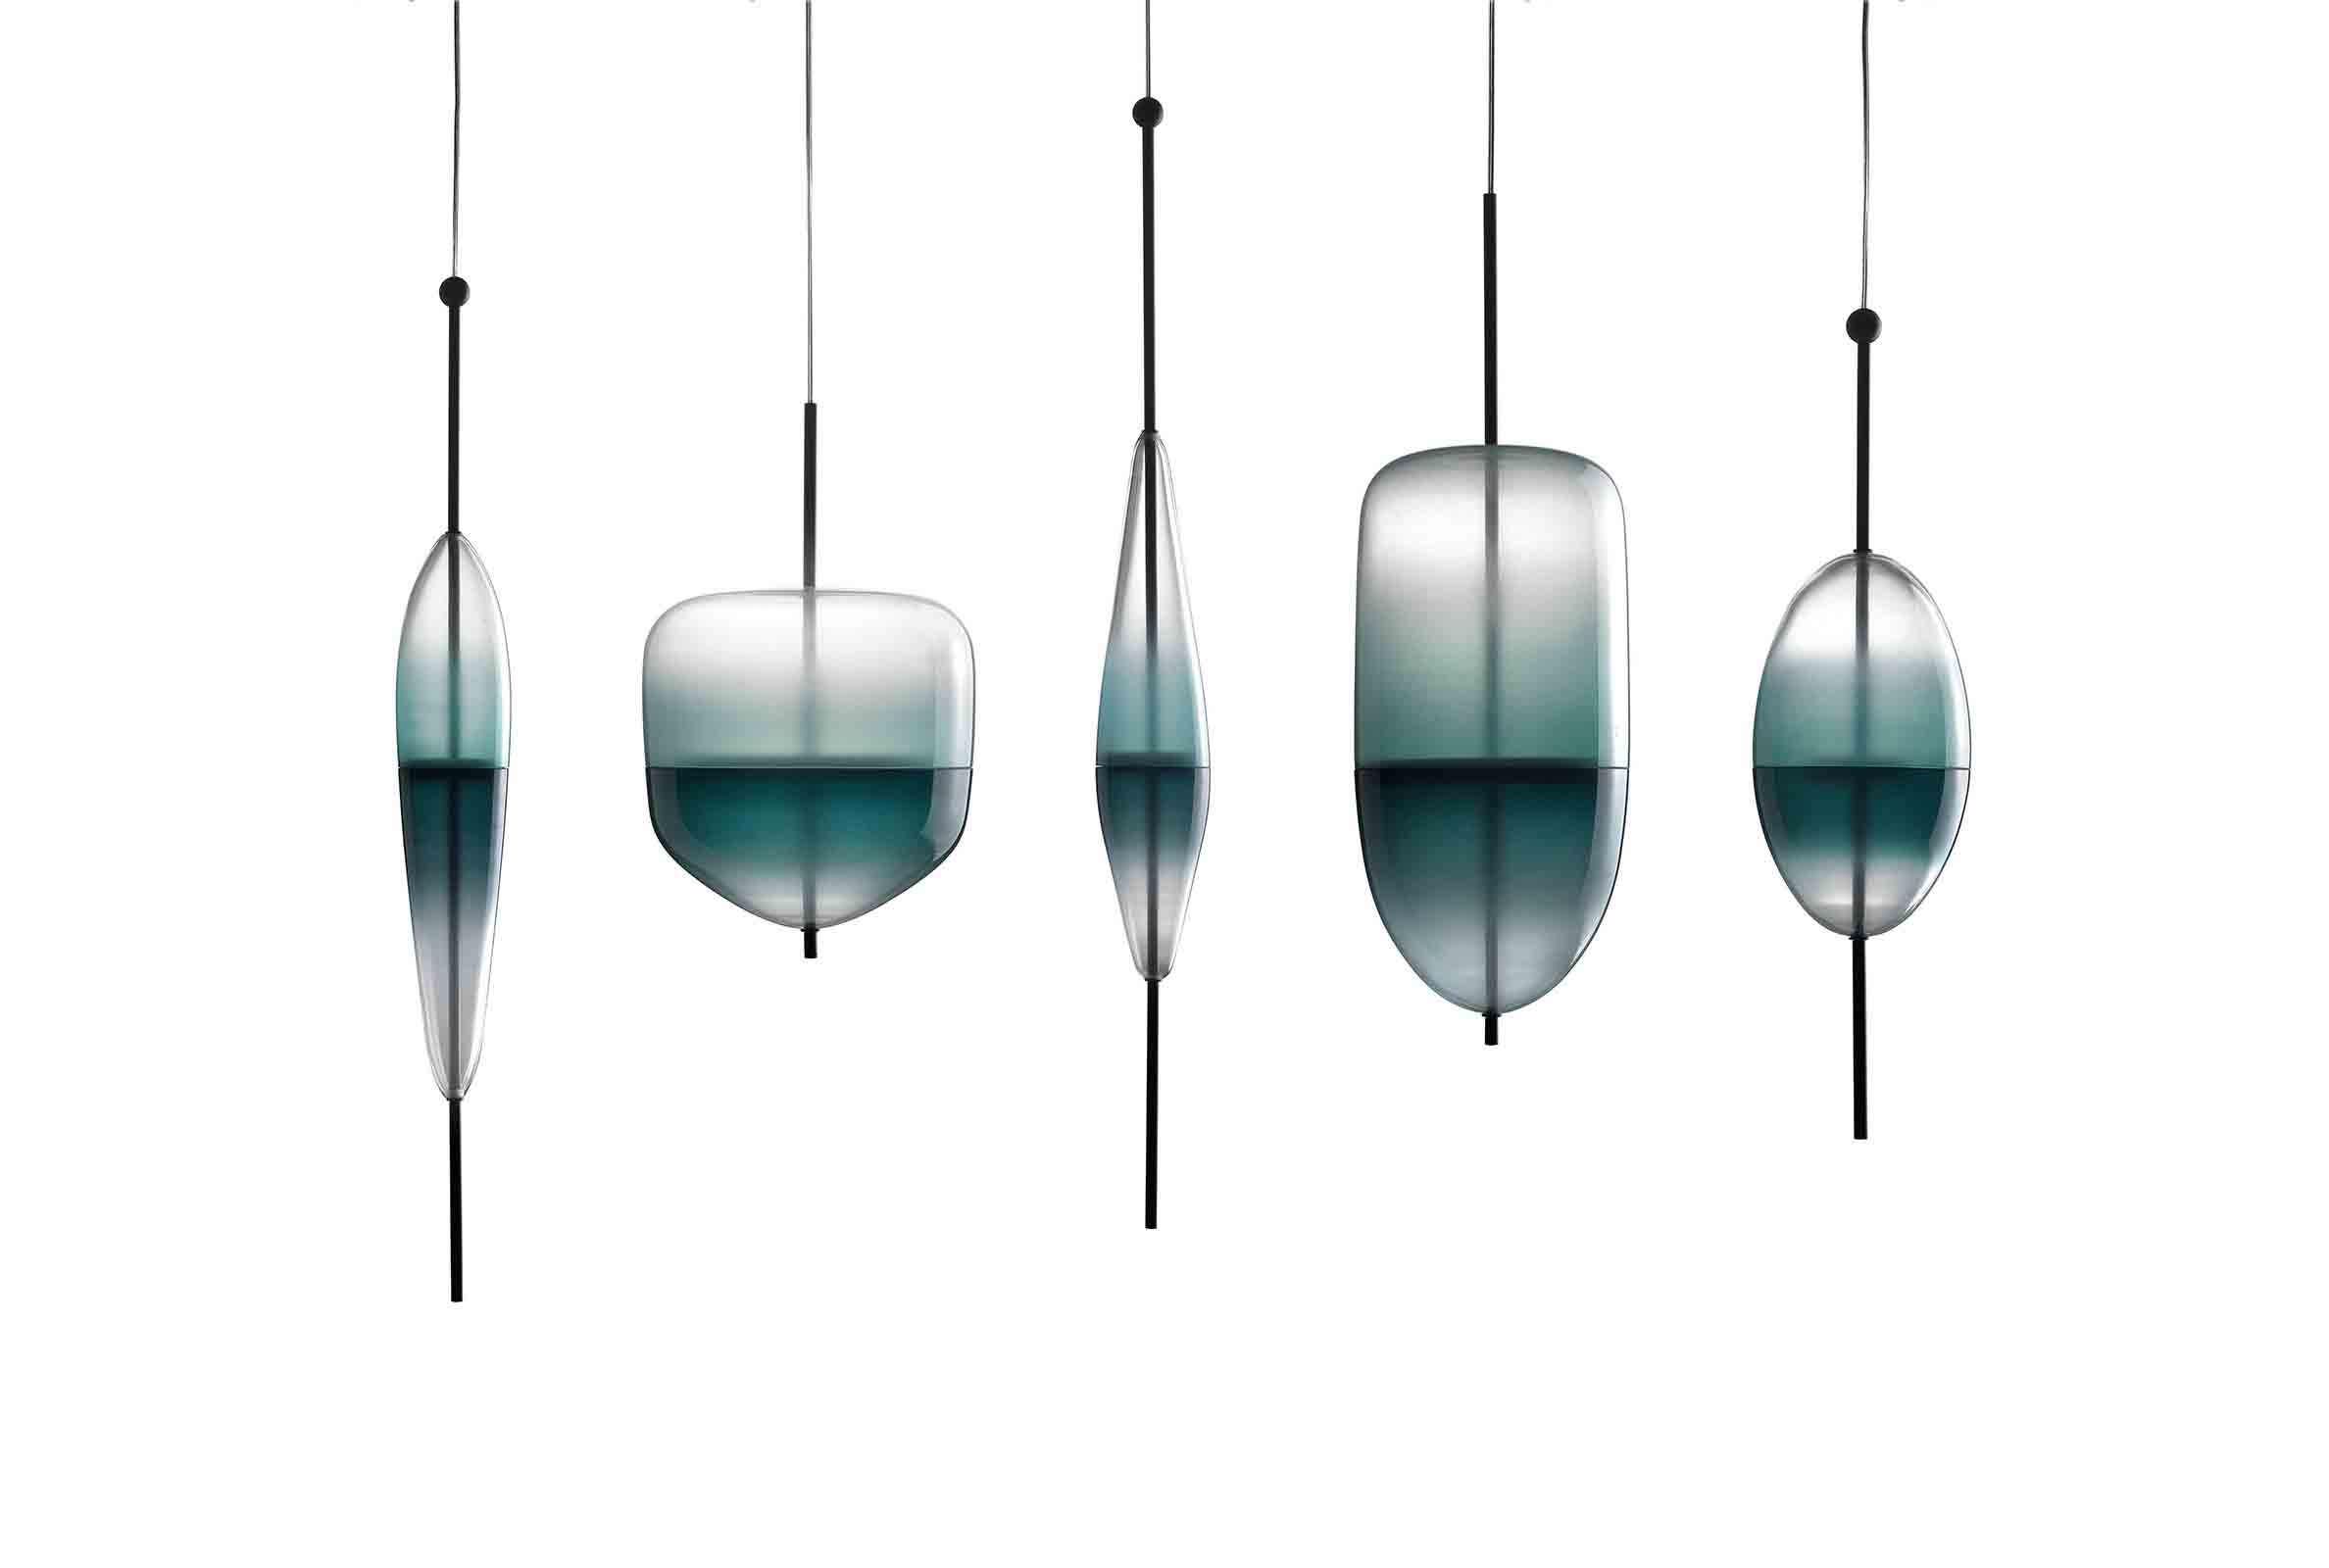 'FlowT' shapes installation by Nao Tamura for Wonderglass